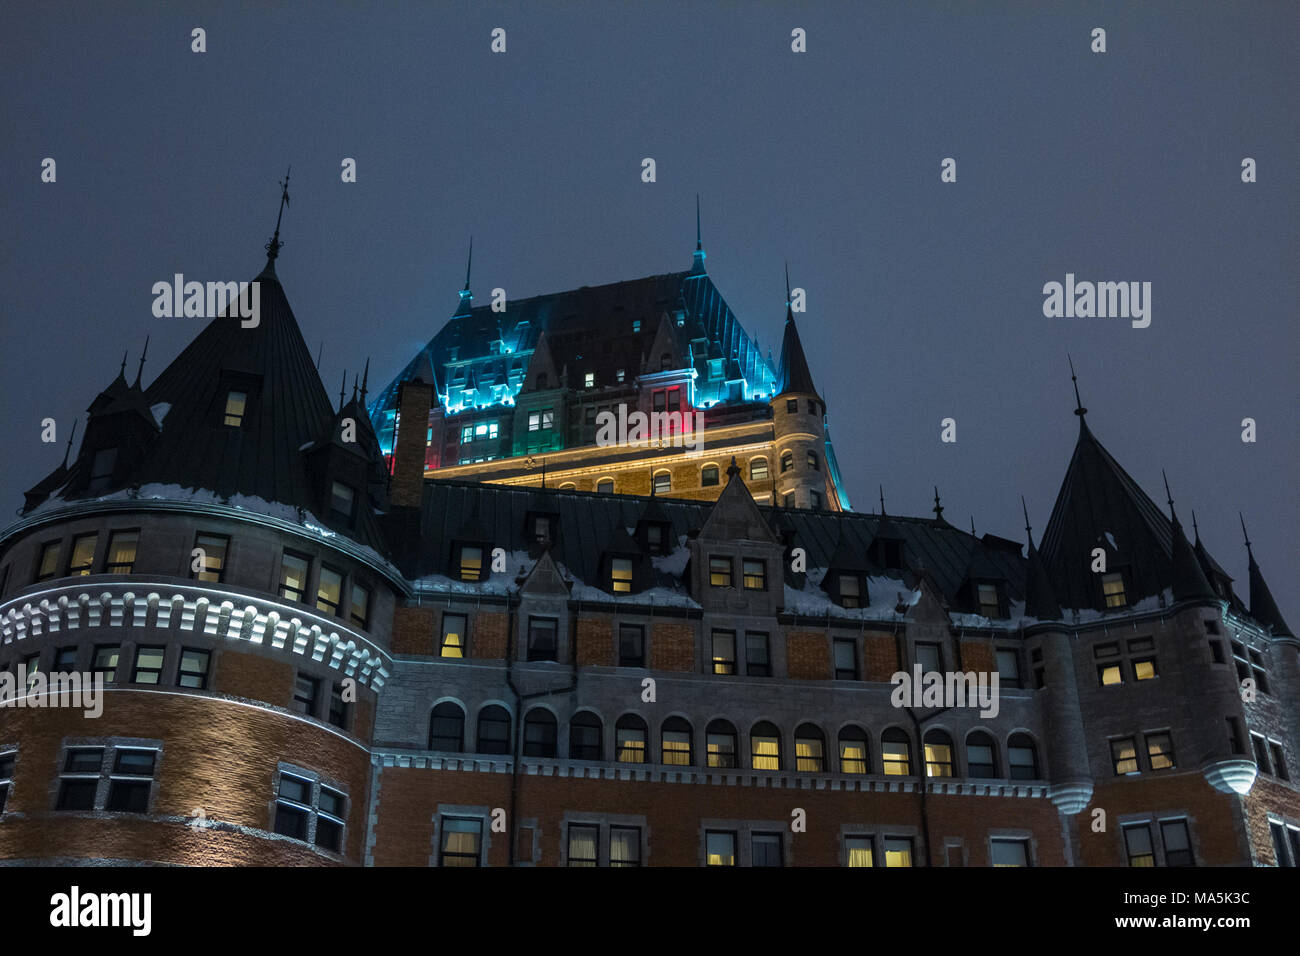 View of Frontenac Castle (Chateau de Frontenac, in French) in winter under the snow during a cold evening. The Château Frontenac is a grand hotel in Q - Stock Image